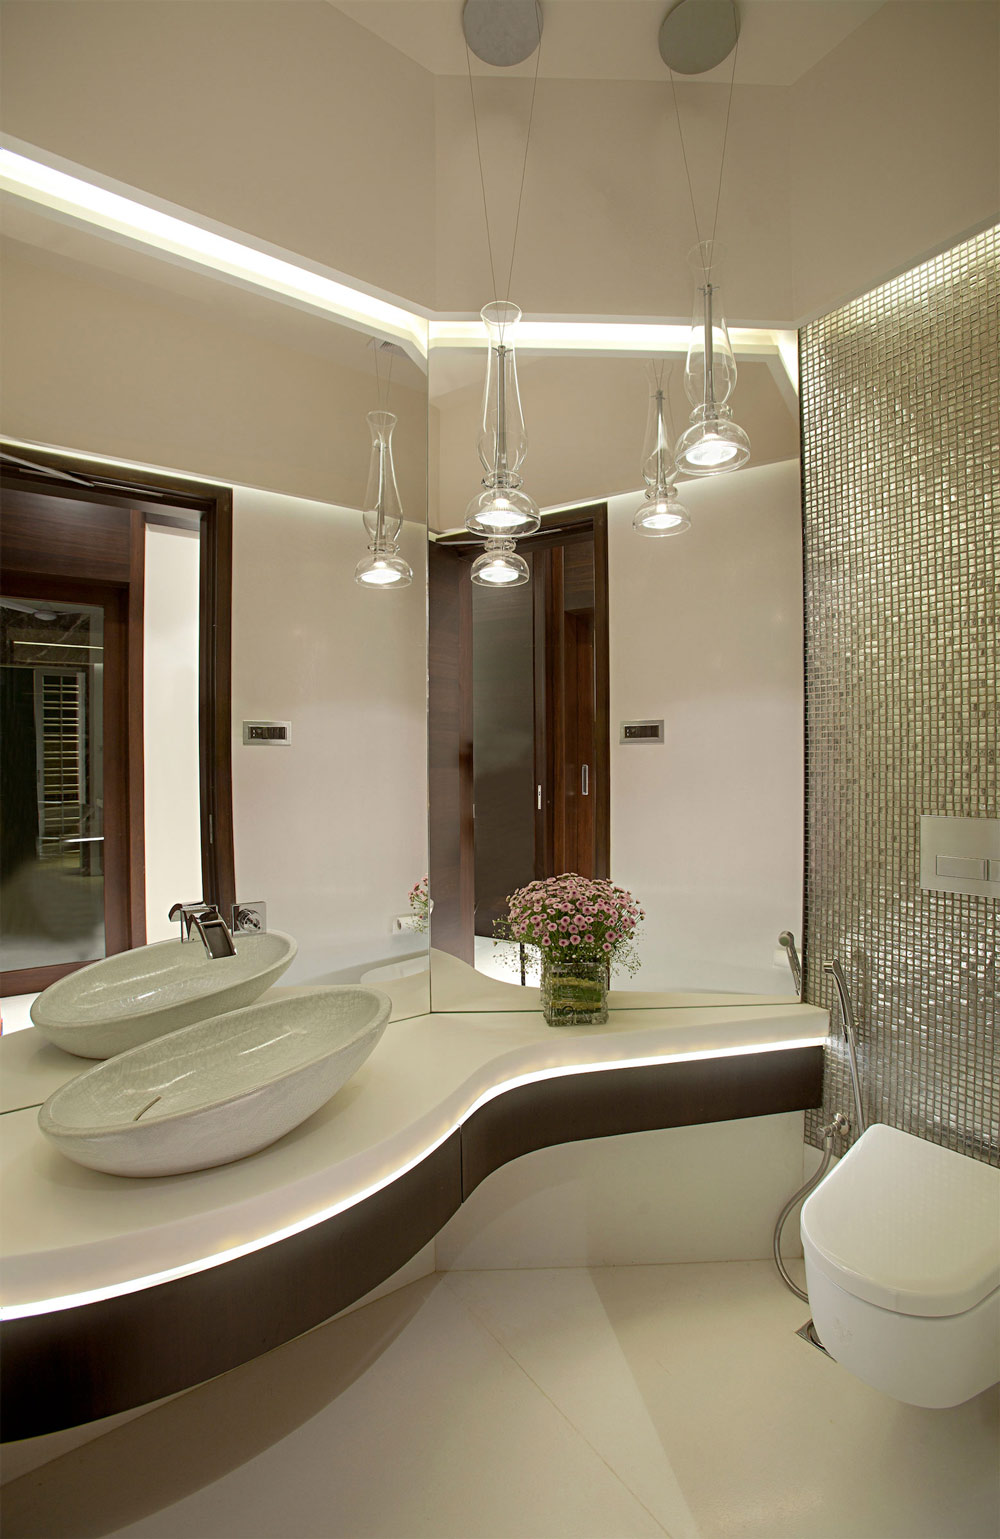 Apartment by the beach in mumbai india by zz architects Bathroom designs for small flats in india